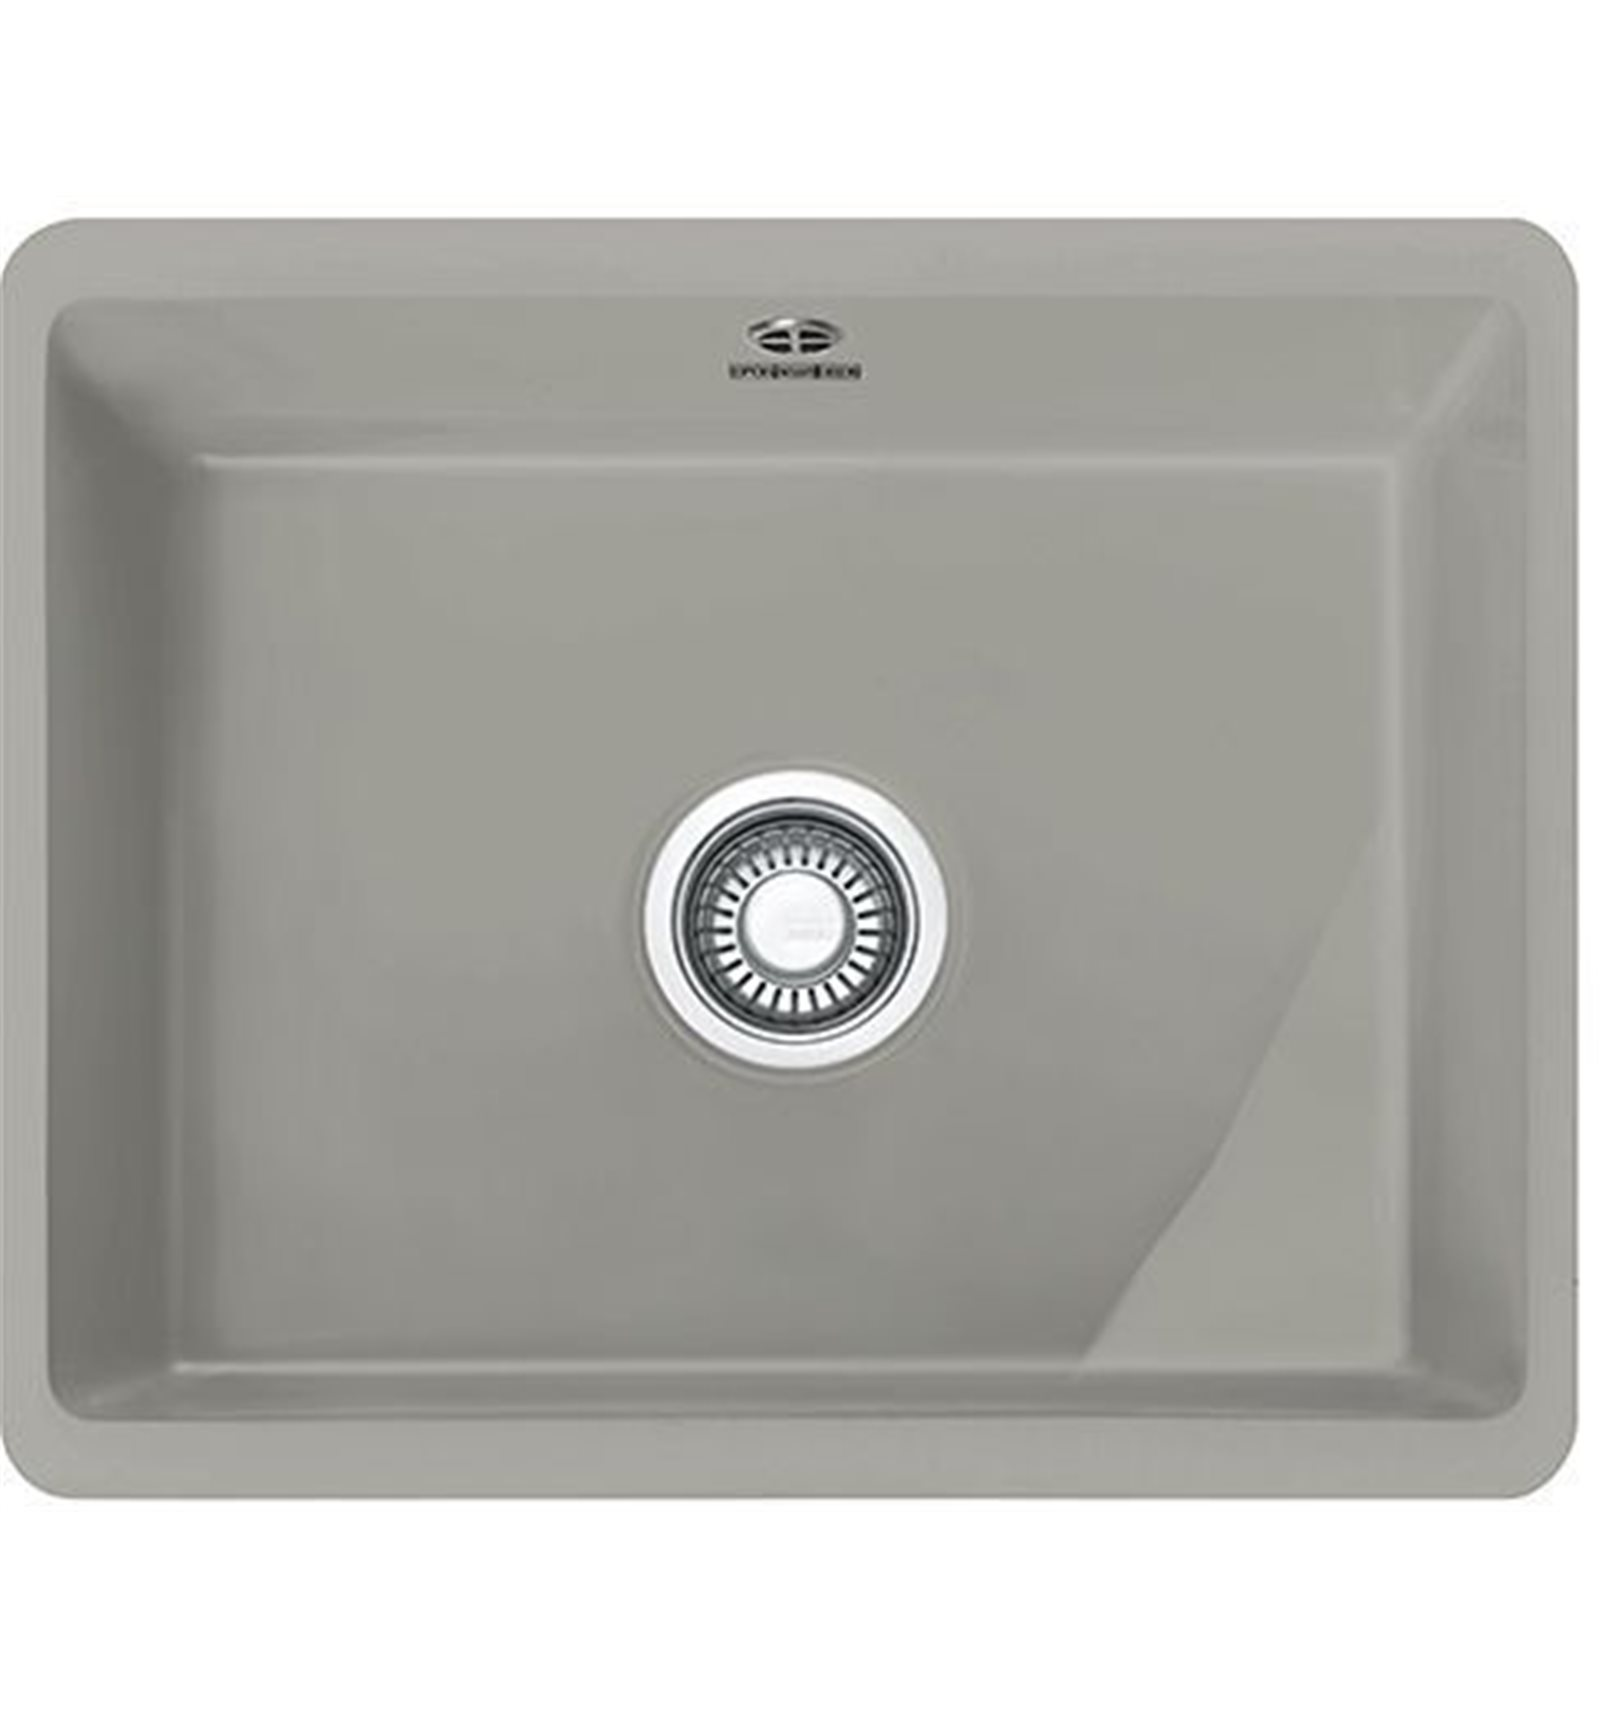 Ceramic Kitchen Sink Franke Kbk 110 50 Cermic Undermount Kitchen Sink